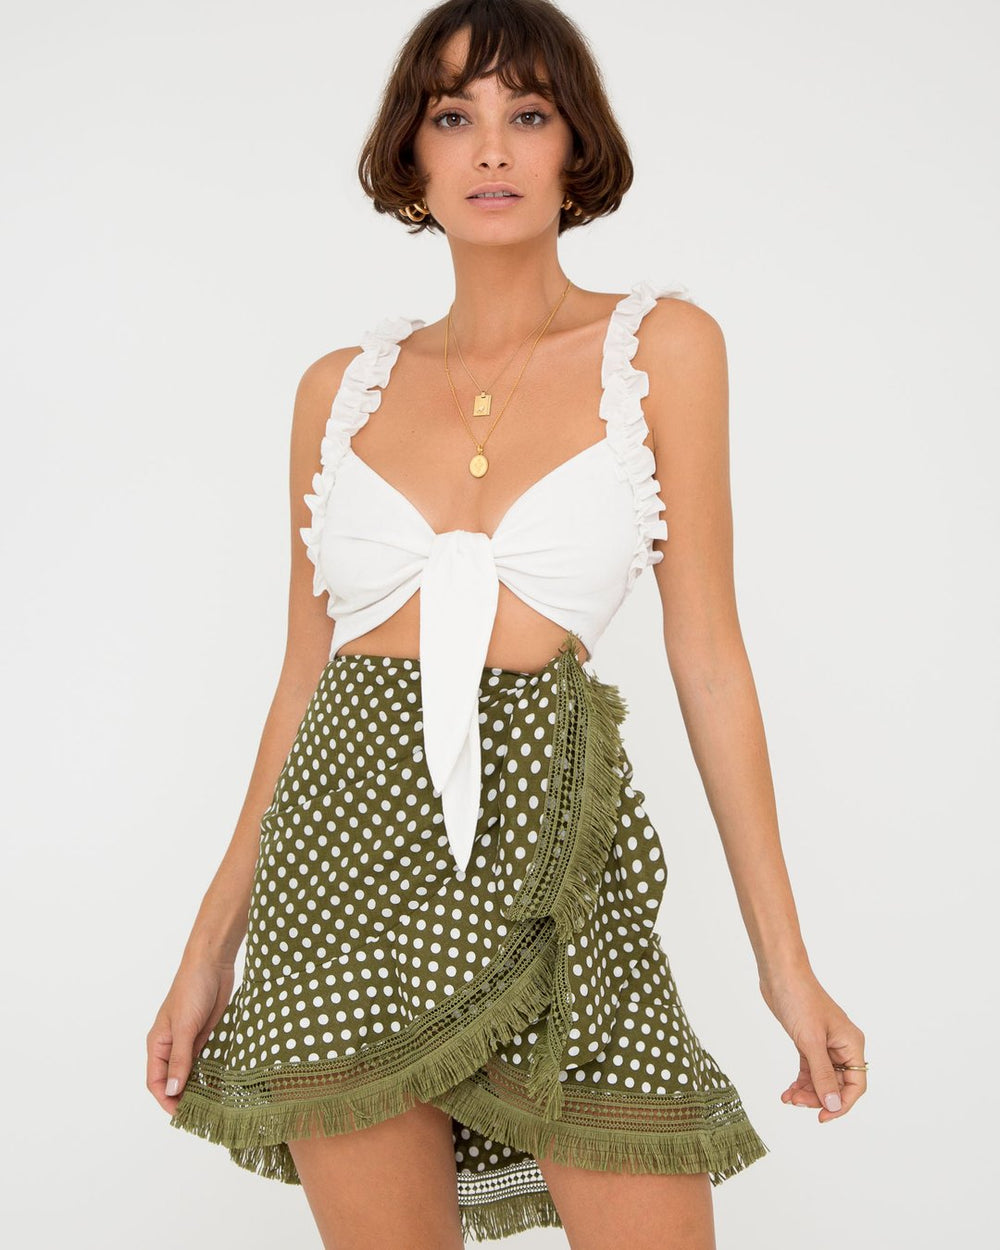 Etienne Tie Crop by Carver at Maximillia.